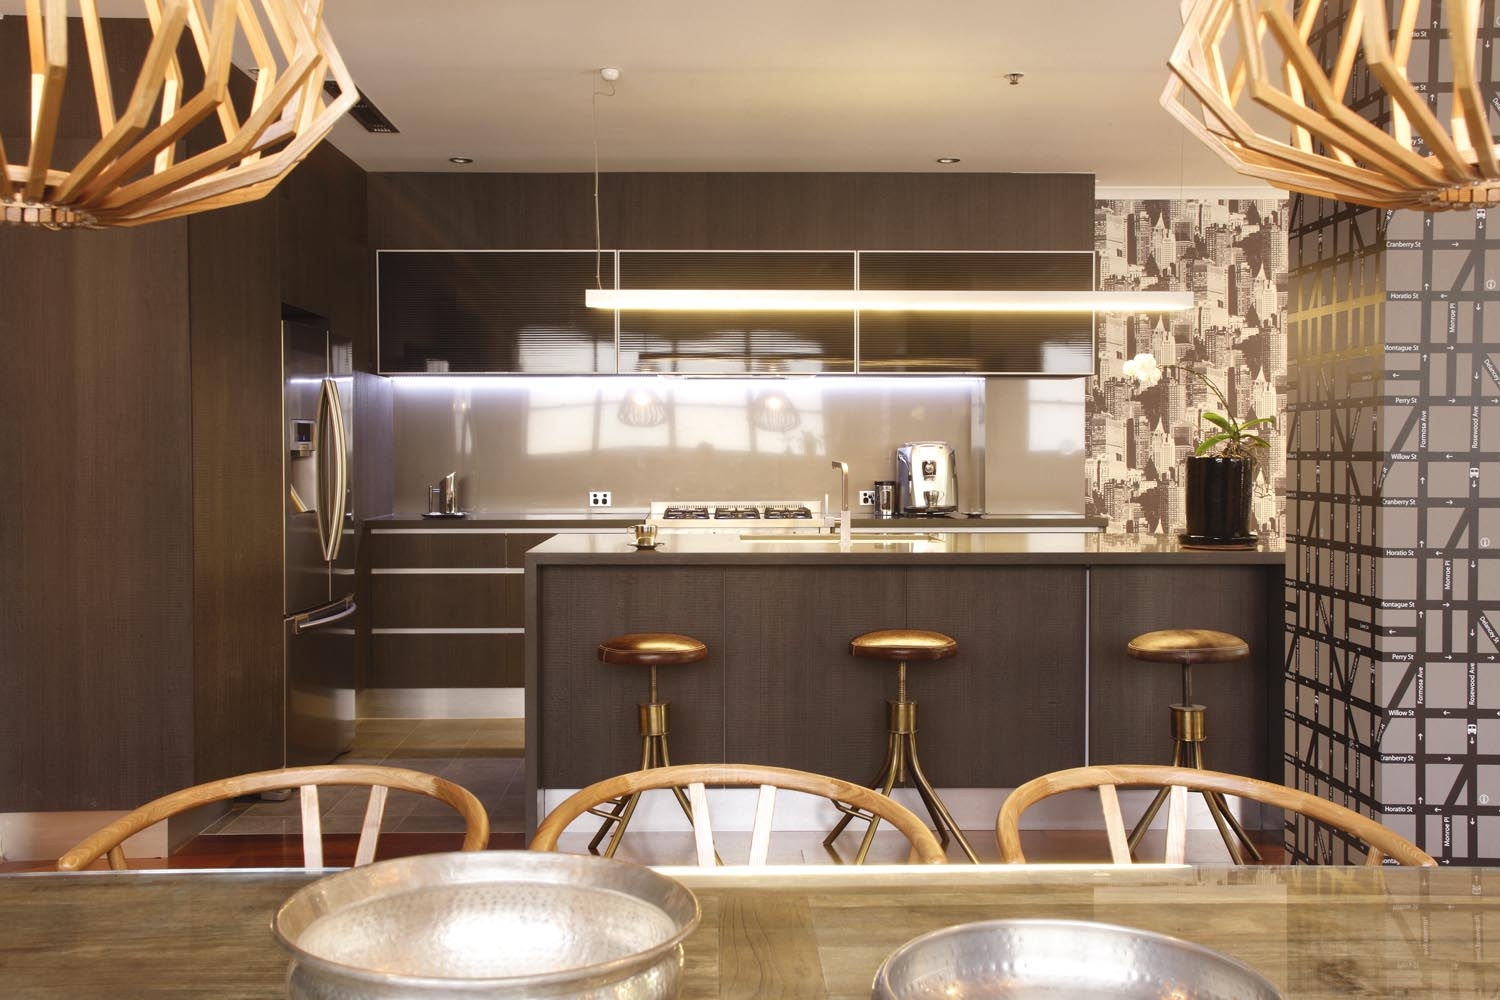 Brass elements add a glamorous and warm feel to the space